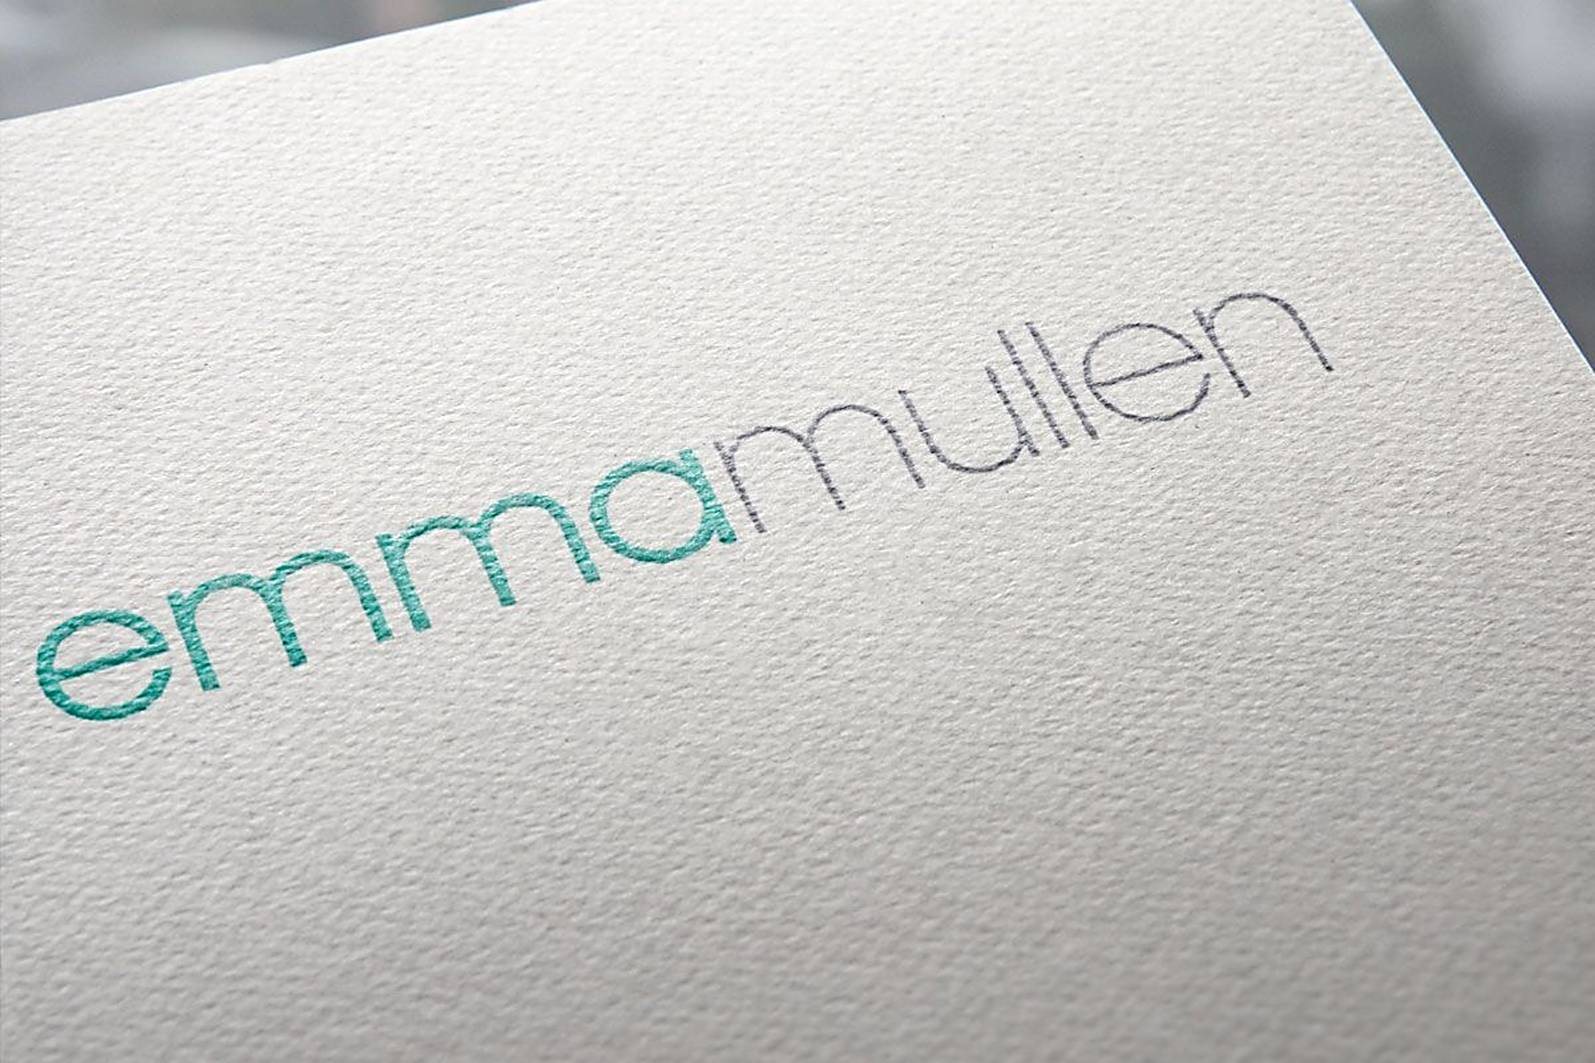 logo on paper